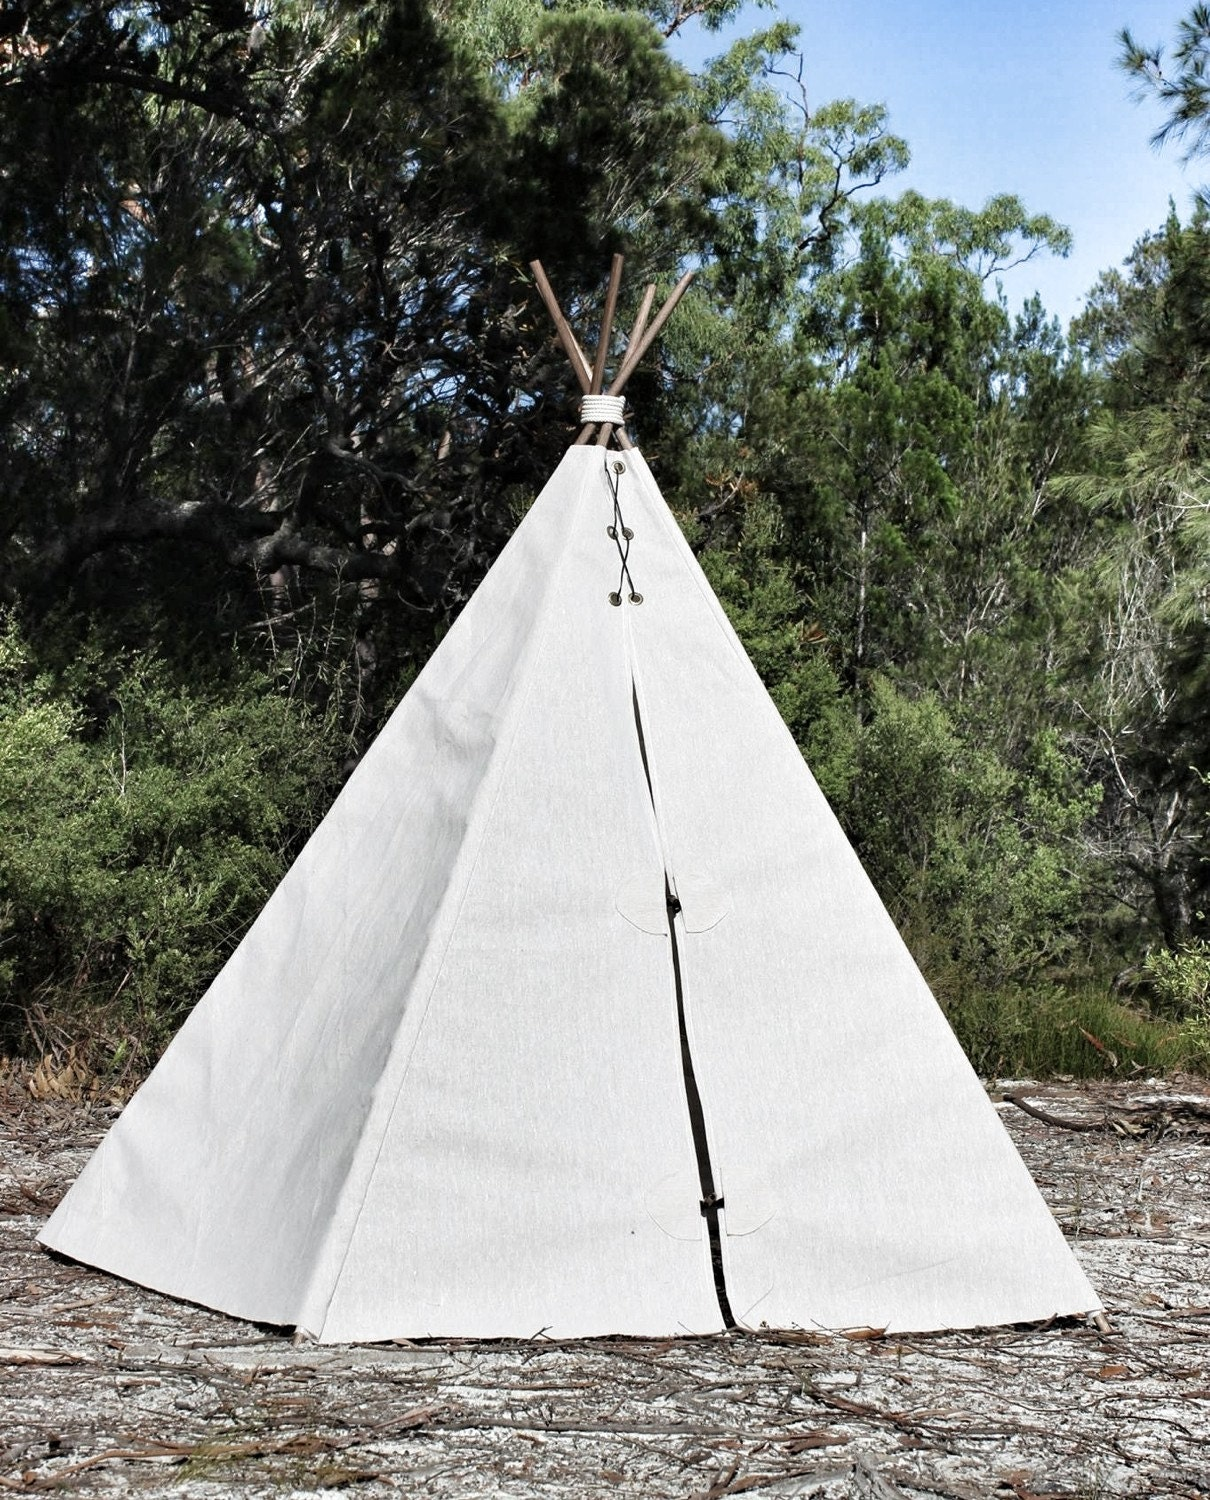 Large outdoor canvas Teepee tent 1.9m high x 1.6m wide handmade wigwam tepee TENT ONLY festival gl&ing gypsy wedding prop & Large outdoor canvas Teepee tent 1.9m high x 1.6m wide handmade ...